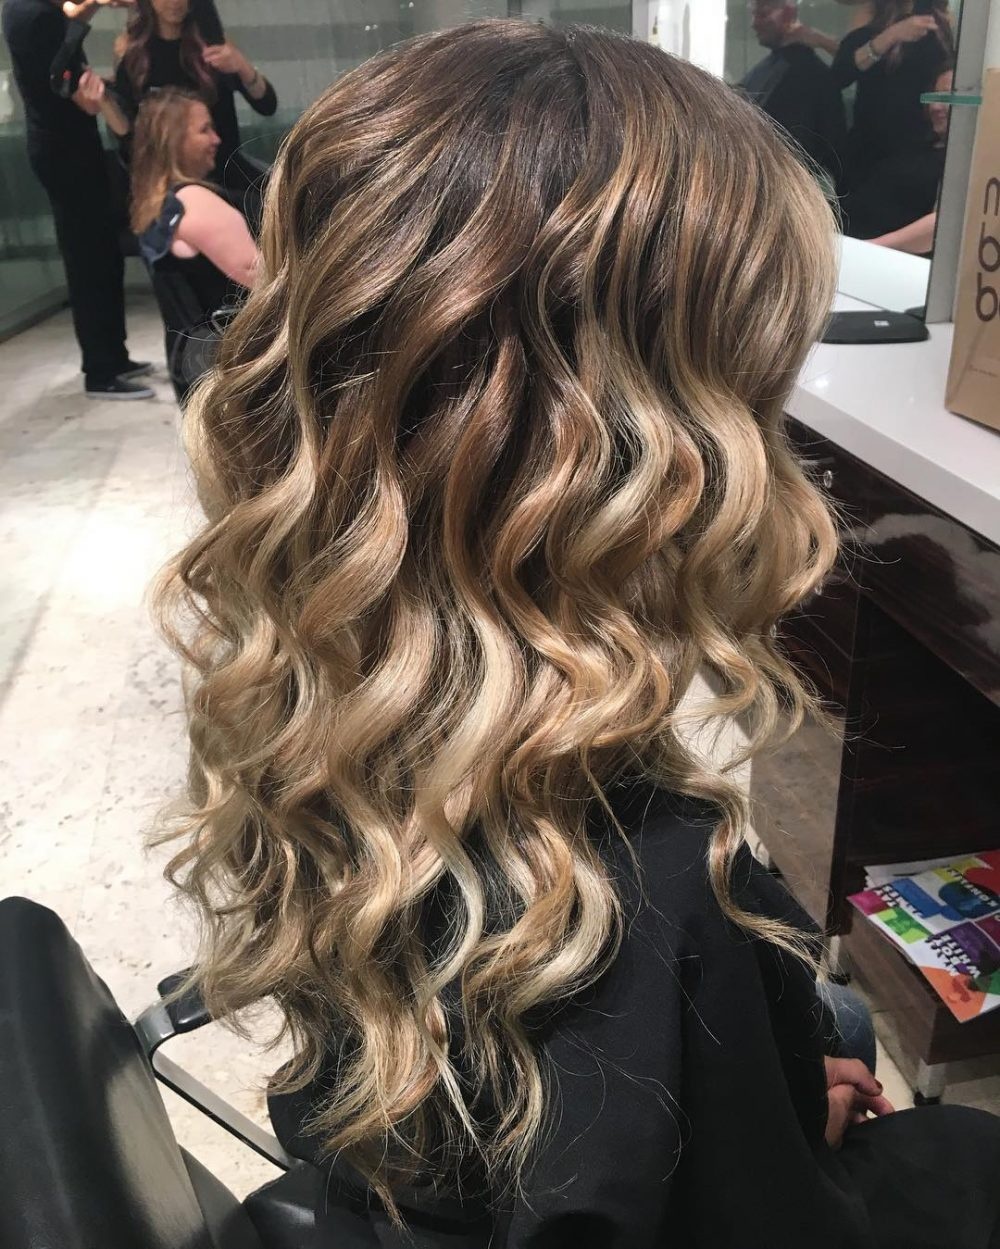 Prom hairstyles for long hair down loose curls Chickasha 9 ...